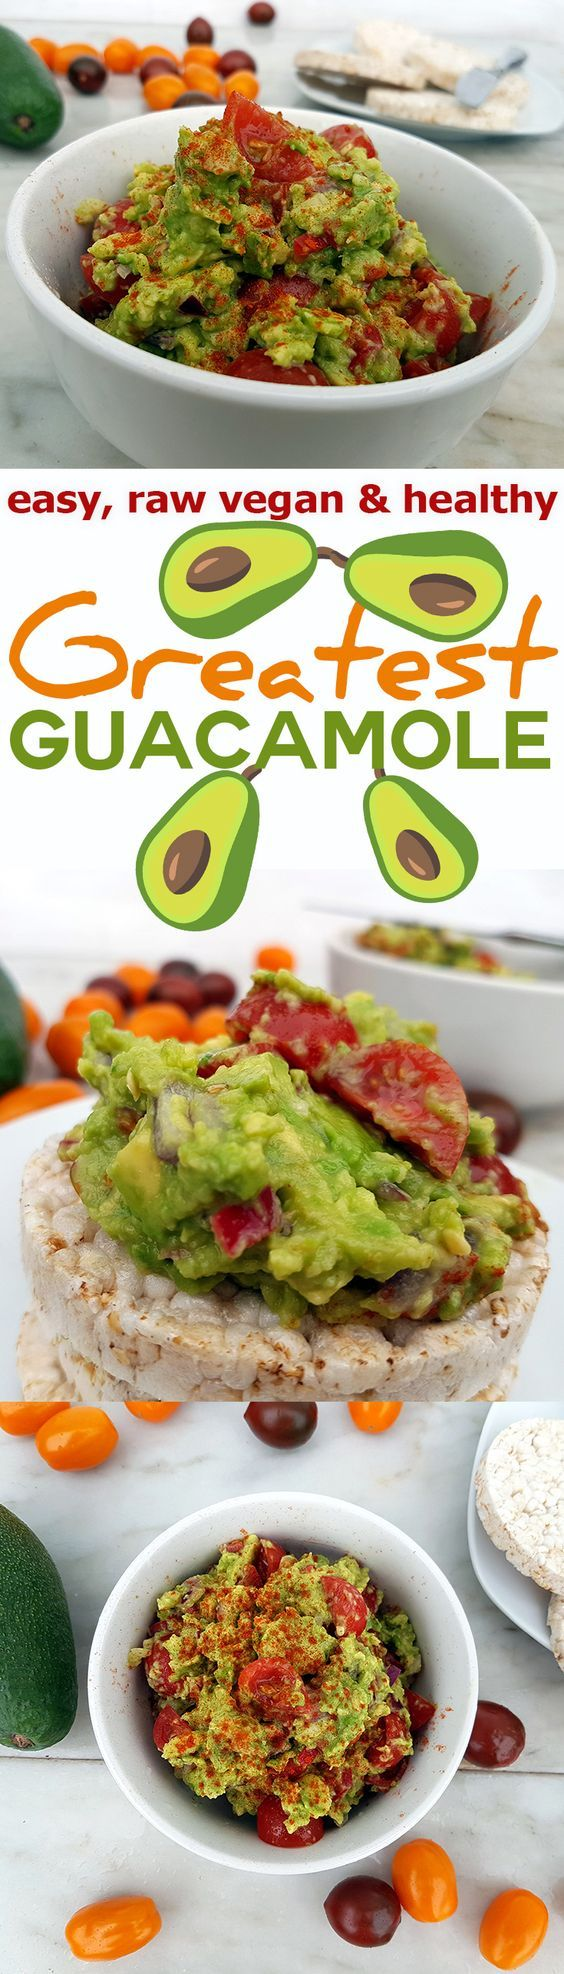 This Guacamole recipe is easy, dairy free and full of nutrients. No added oil, with lime juice and cherry tomatoes. via @nestandglow